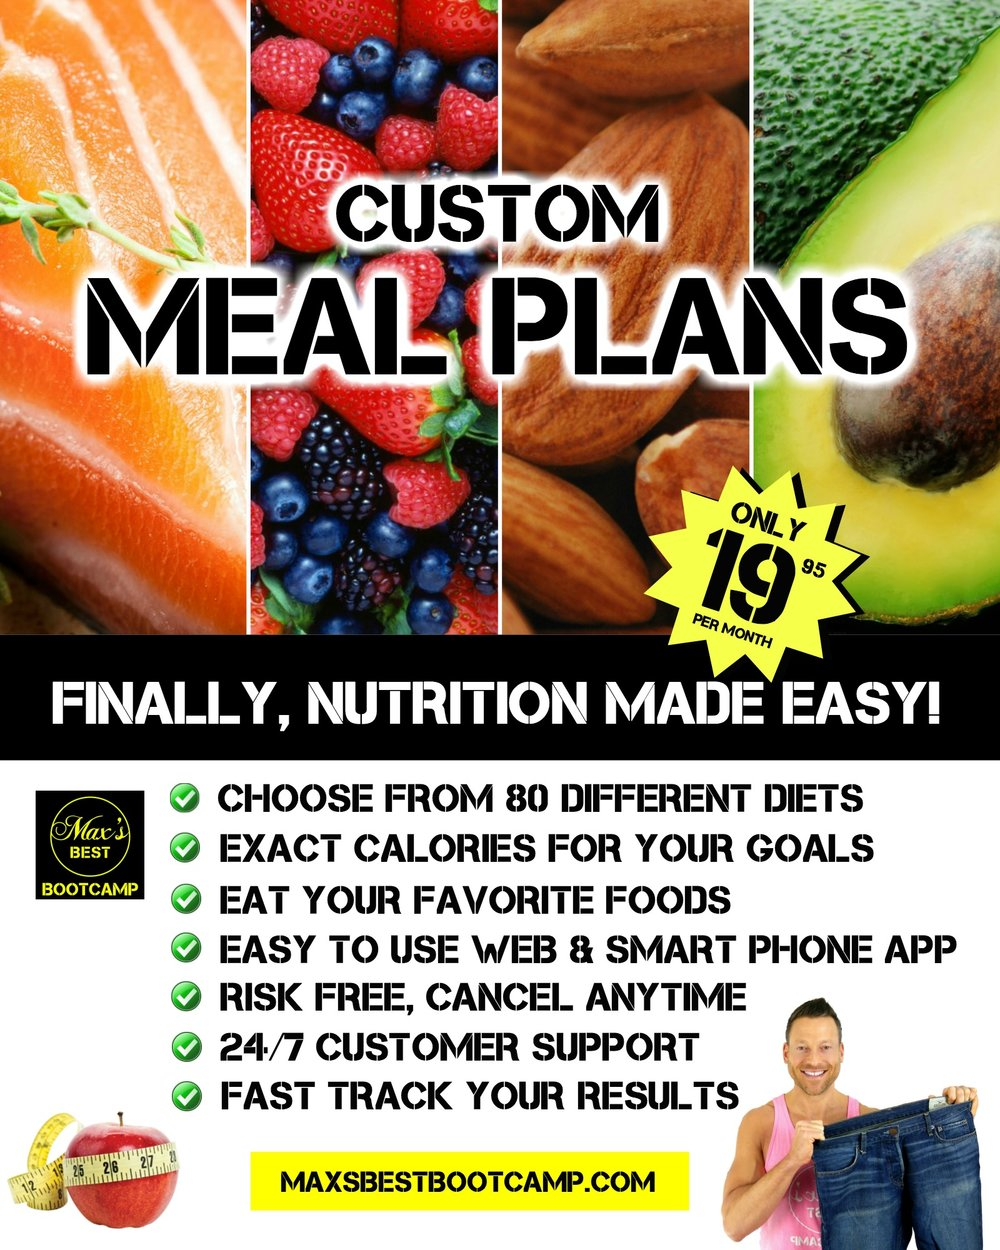 Maxs Best Bootcamp Custom Meal Plan flyer 1.jpg